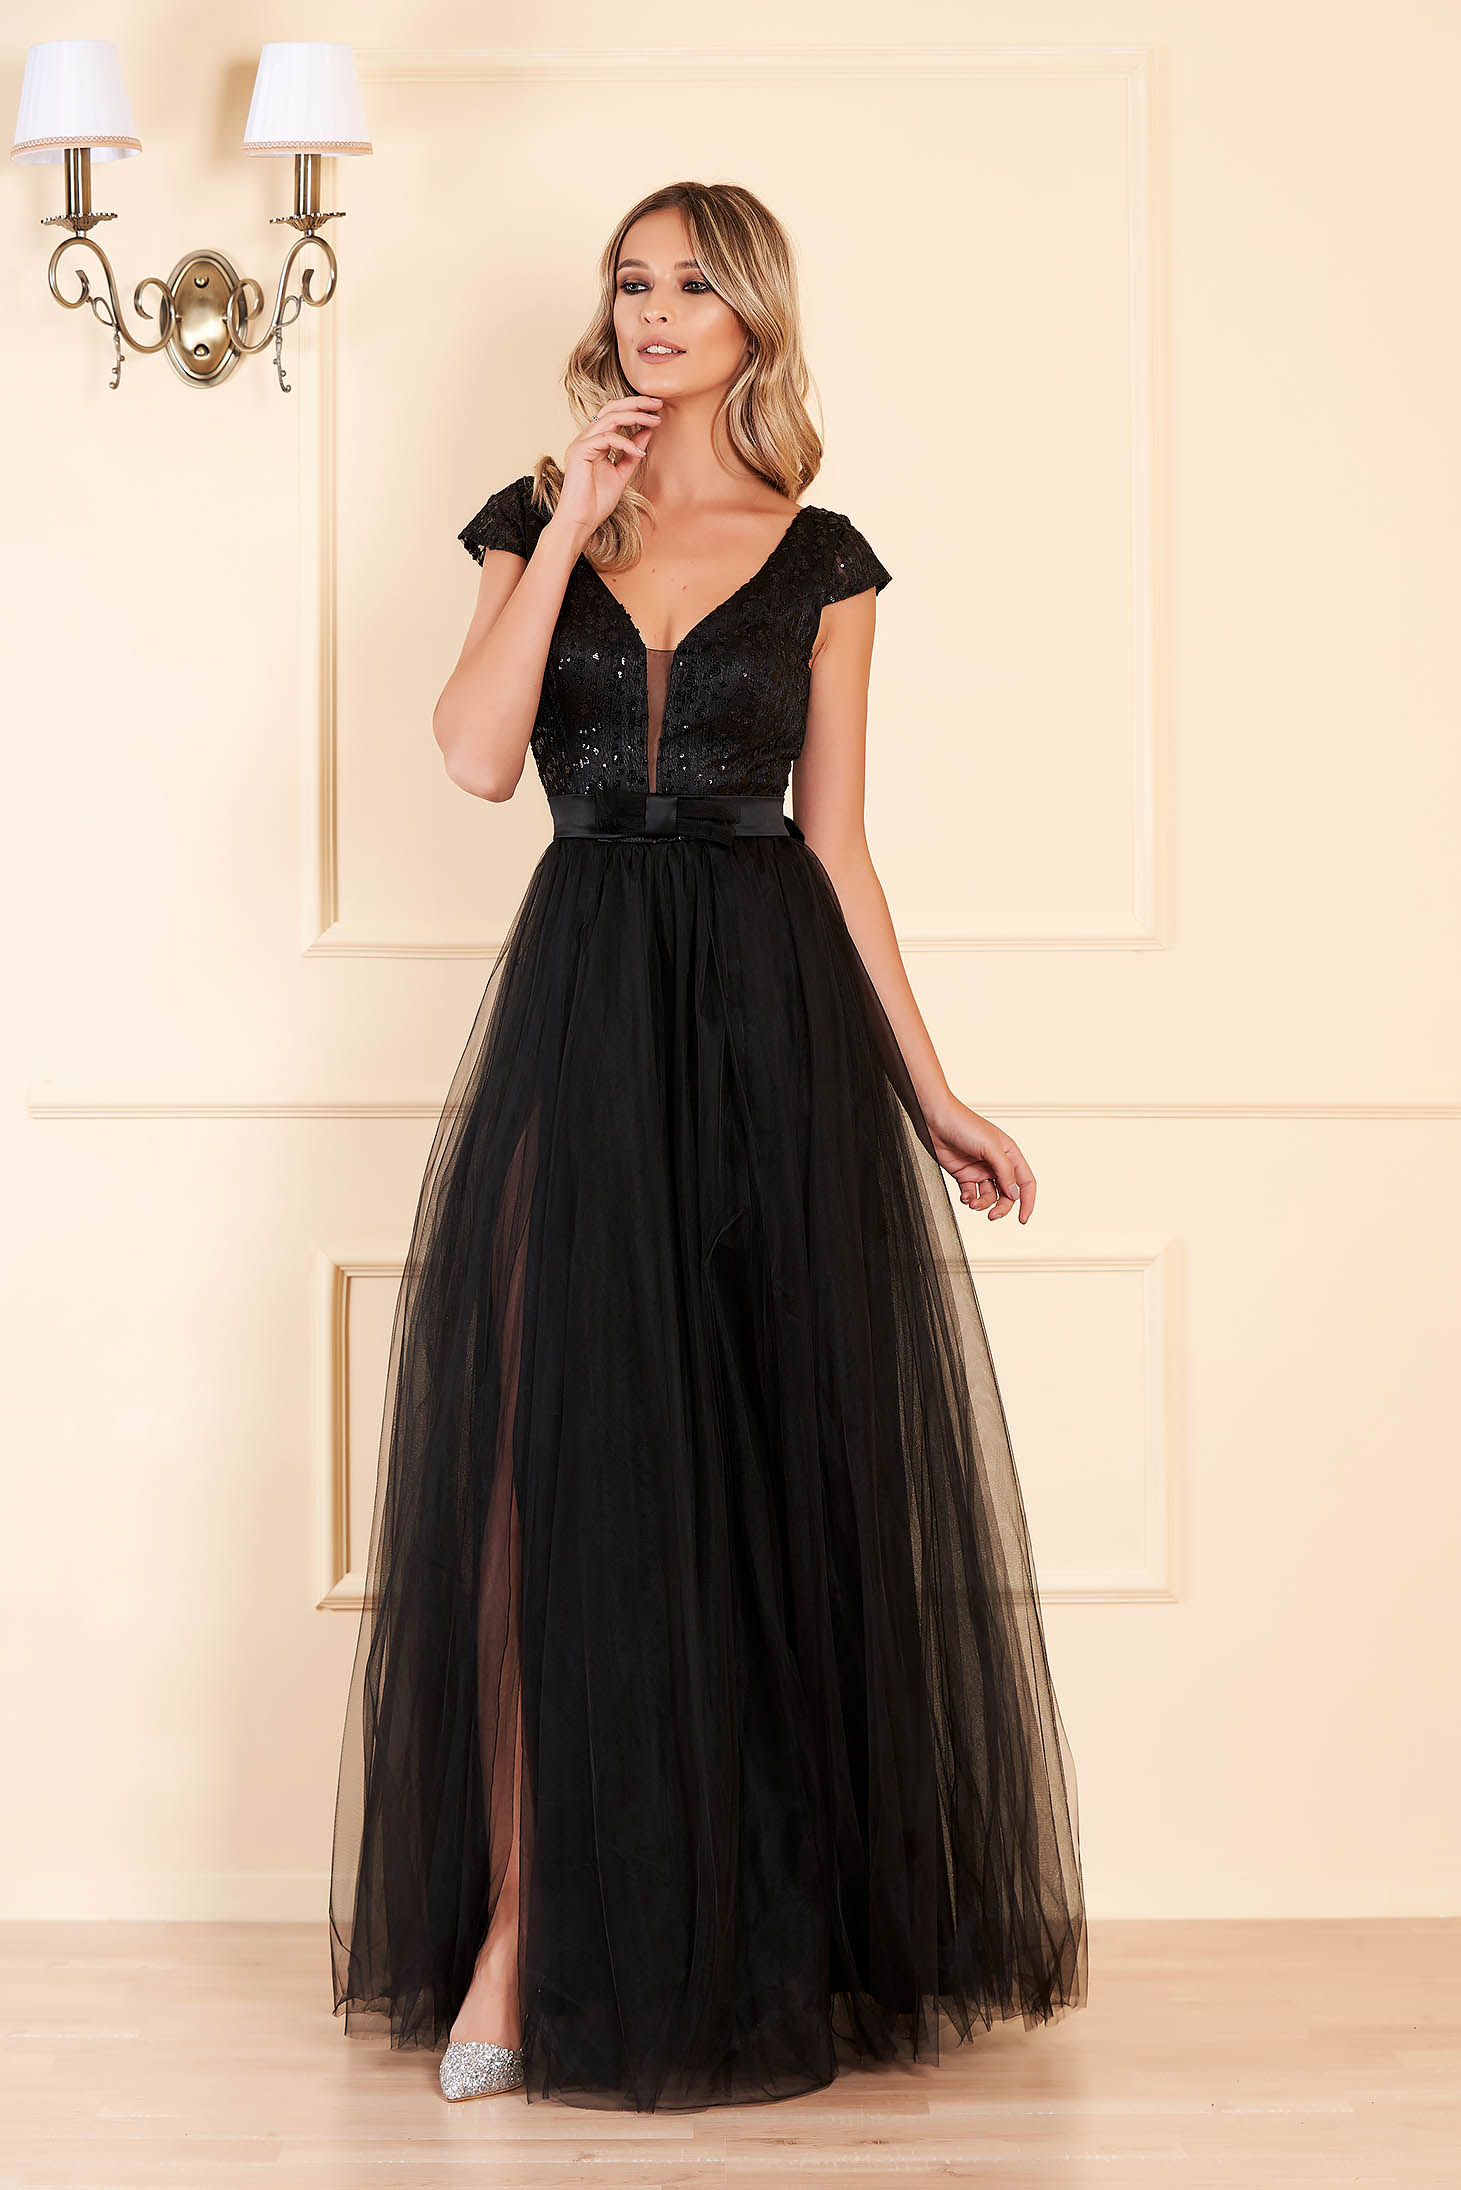 Black occasional long cloche dress bareback with push-up cups with v-neckline with sequin embellished details